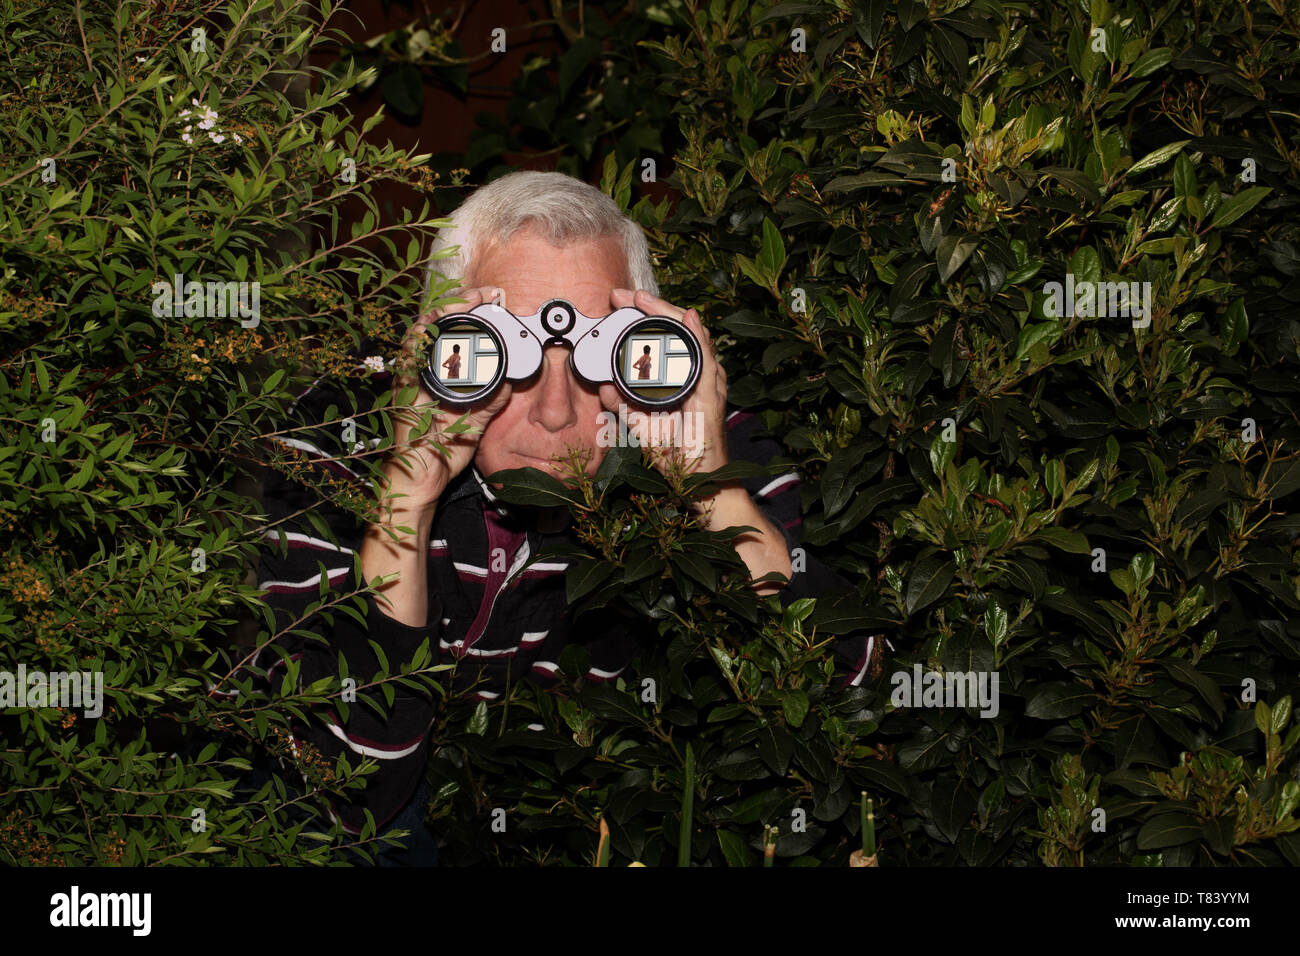 A grey haired man hiding in bushes and spying on a partially dressed woman through binoculars - Stock Image